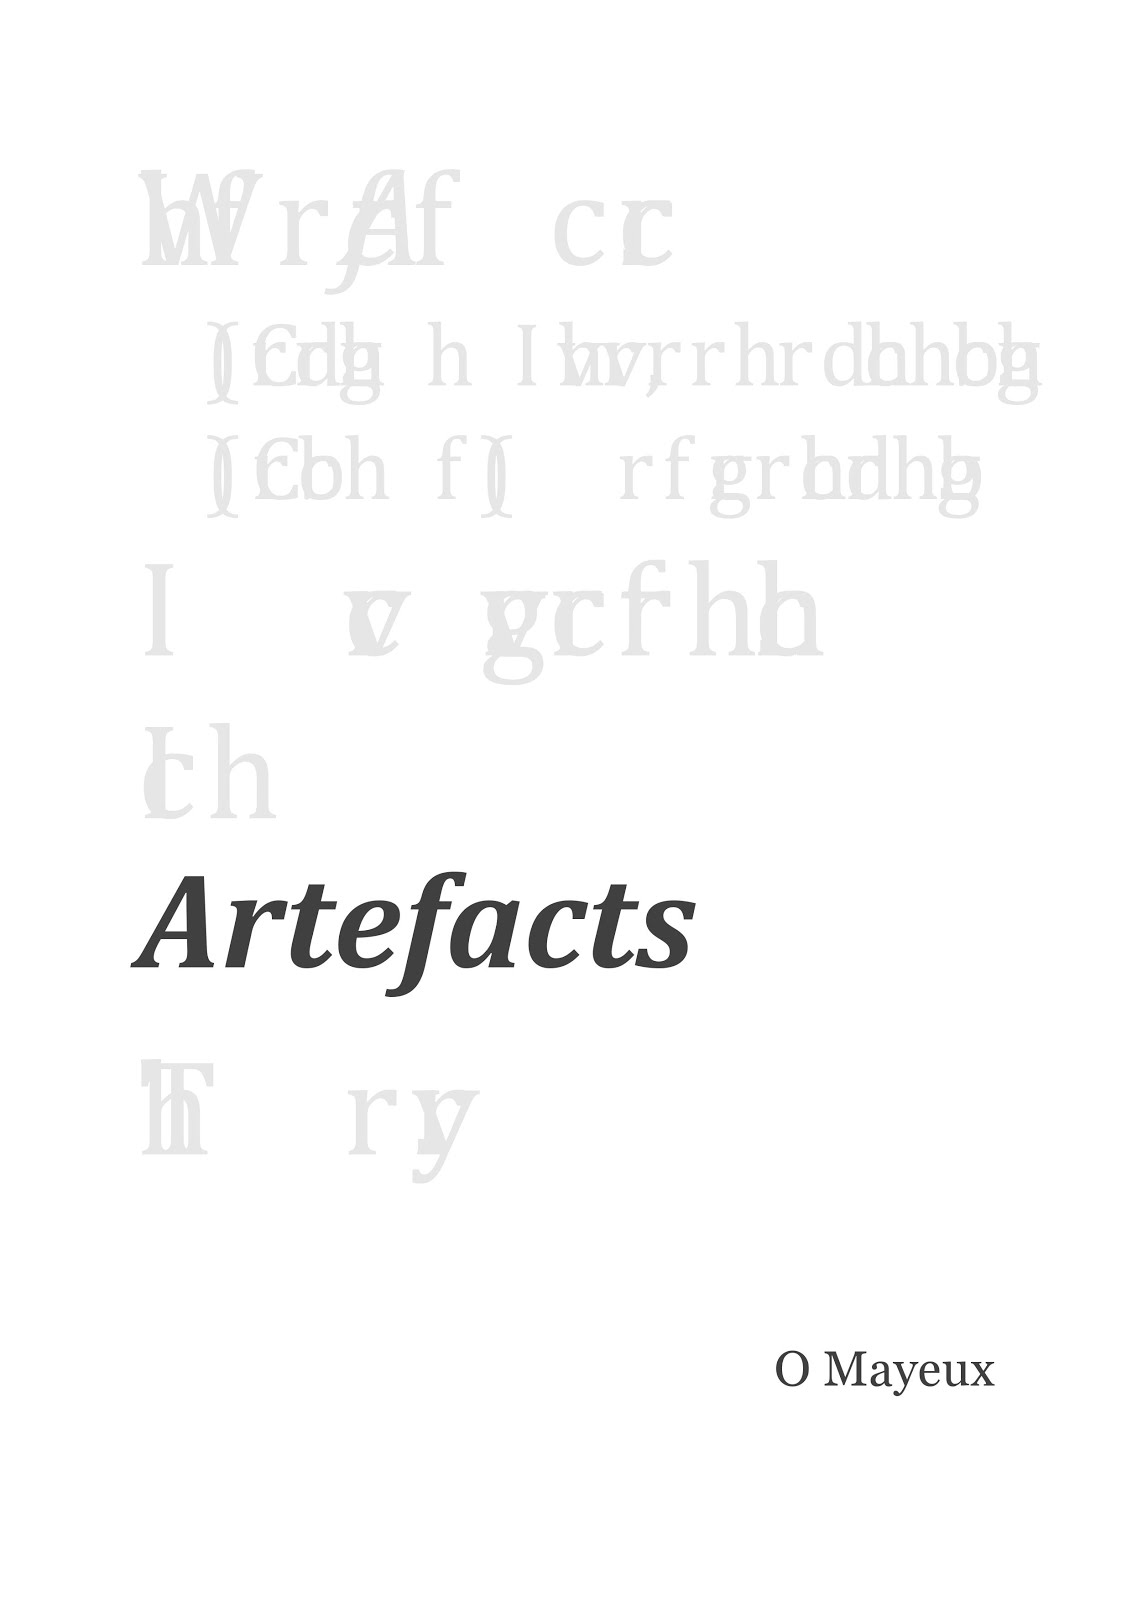 Available Now @ Amazon! Artefacts by O Mayeux